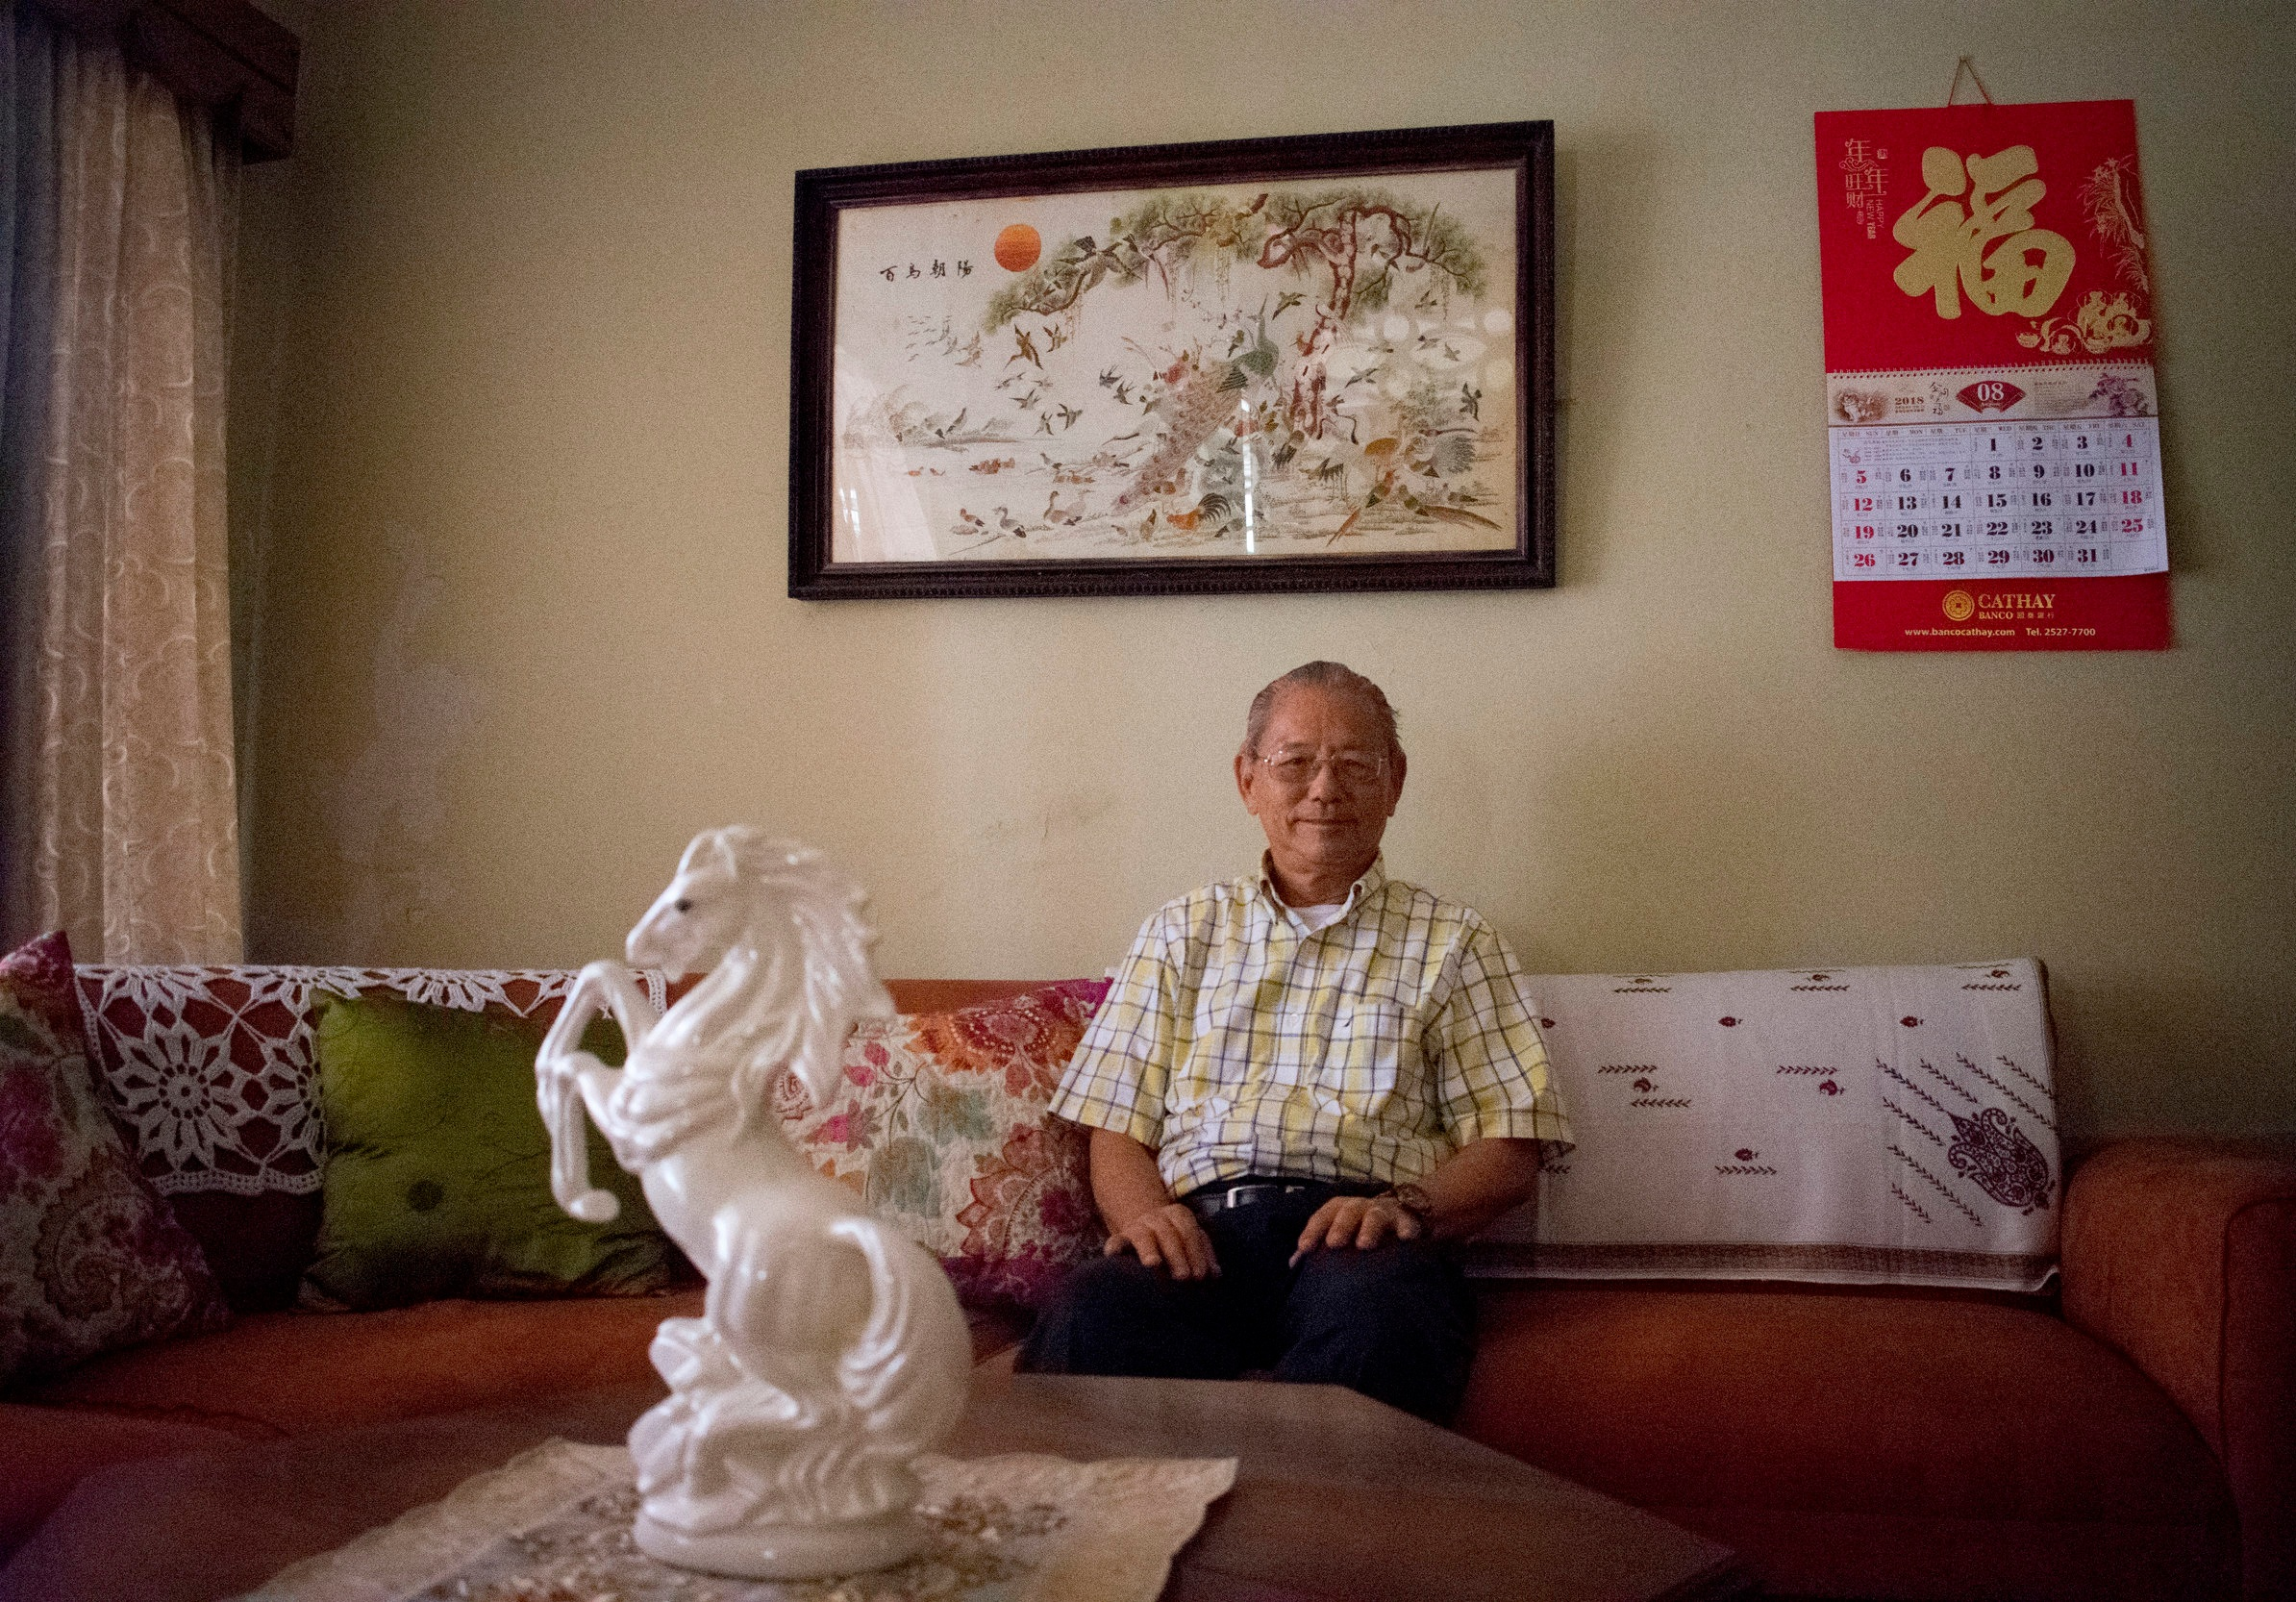 11.+Don+Mario+Chin+Fong%2C+ex-president+of+the+Chinese+Association%2C+sits+in+his+house.jpg